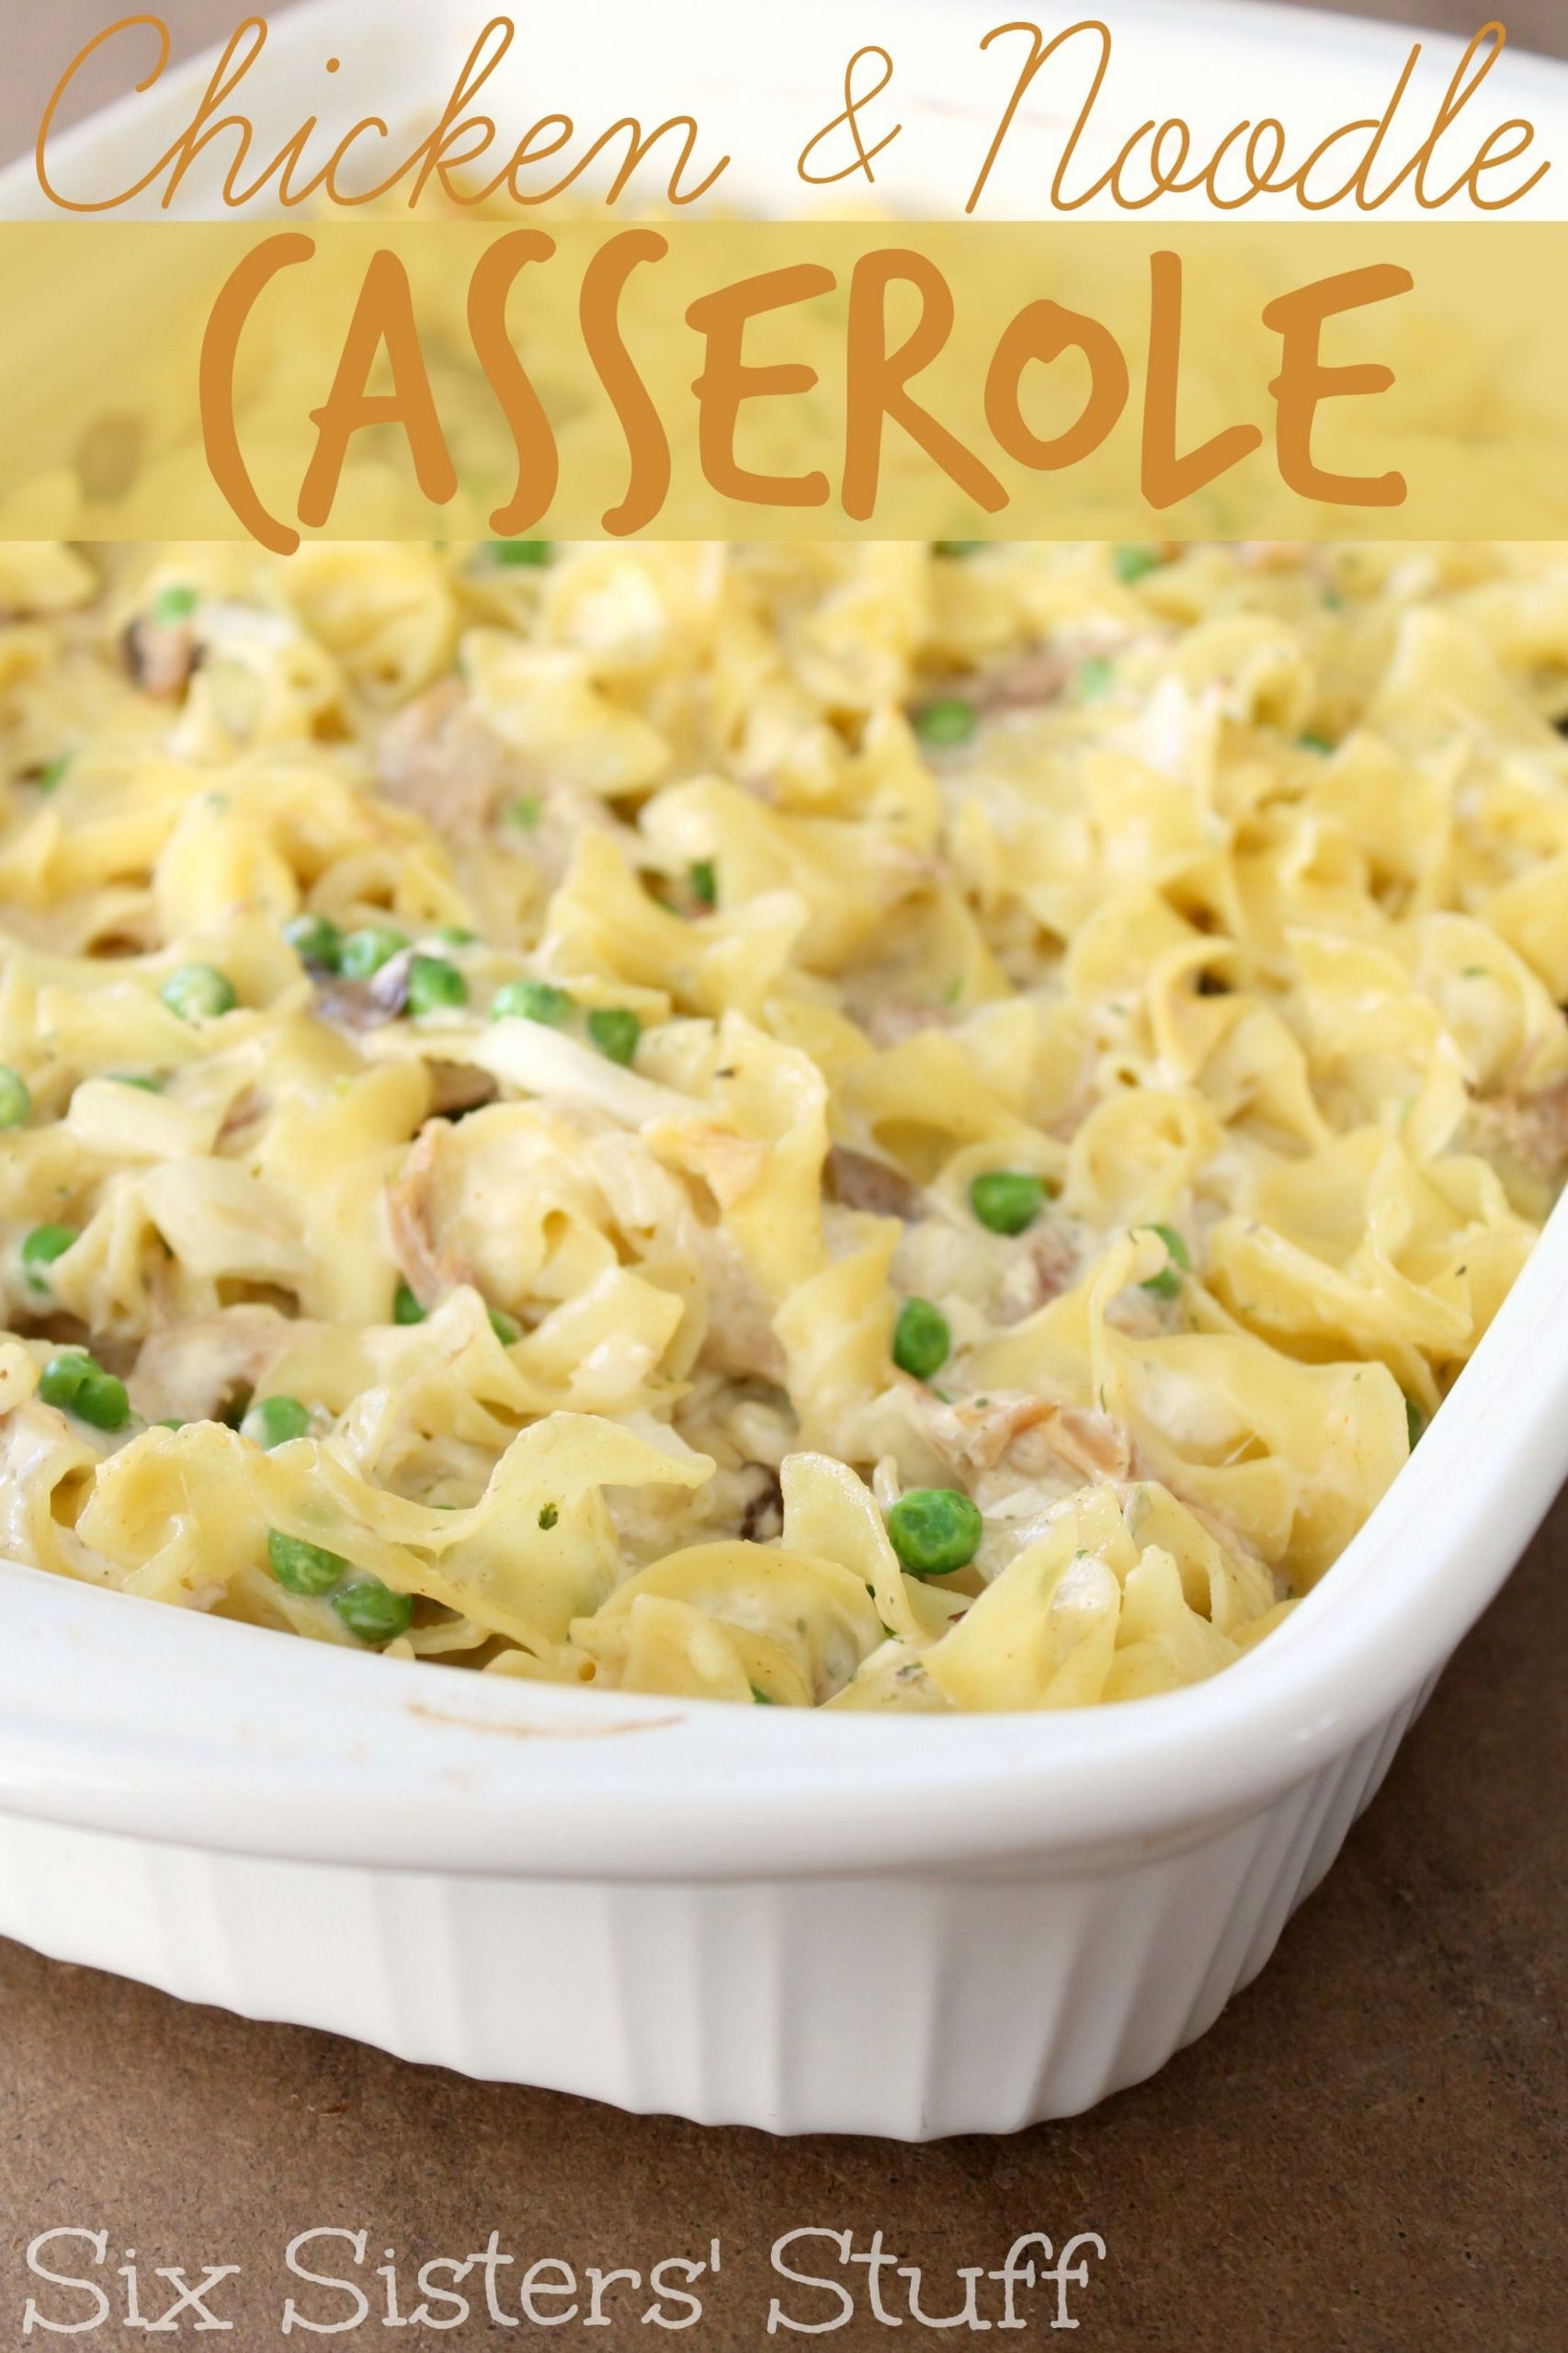 Easy Chicken and Noodle Casserole - Recipes Chicken Noodle Casserole